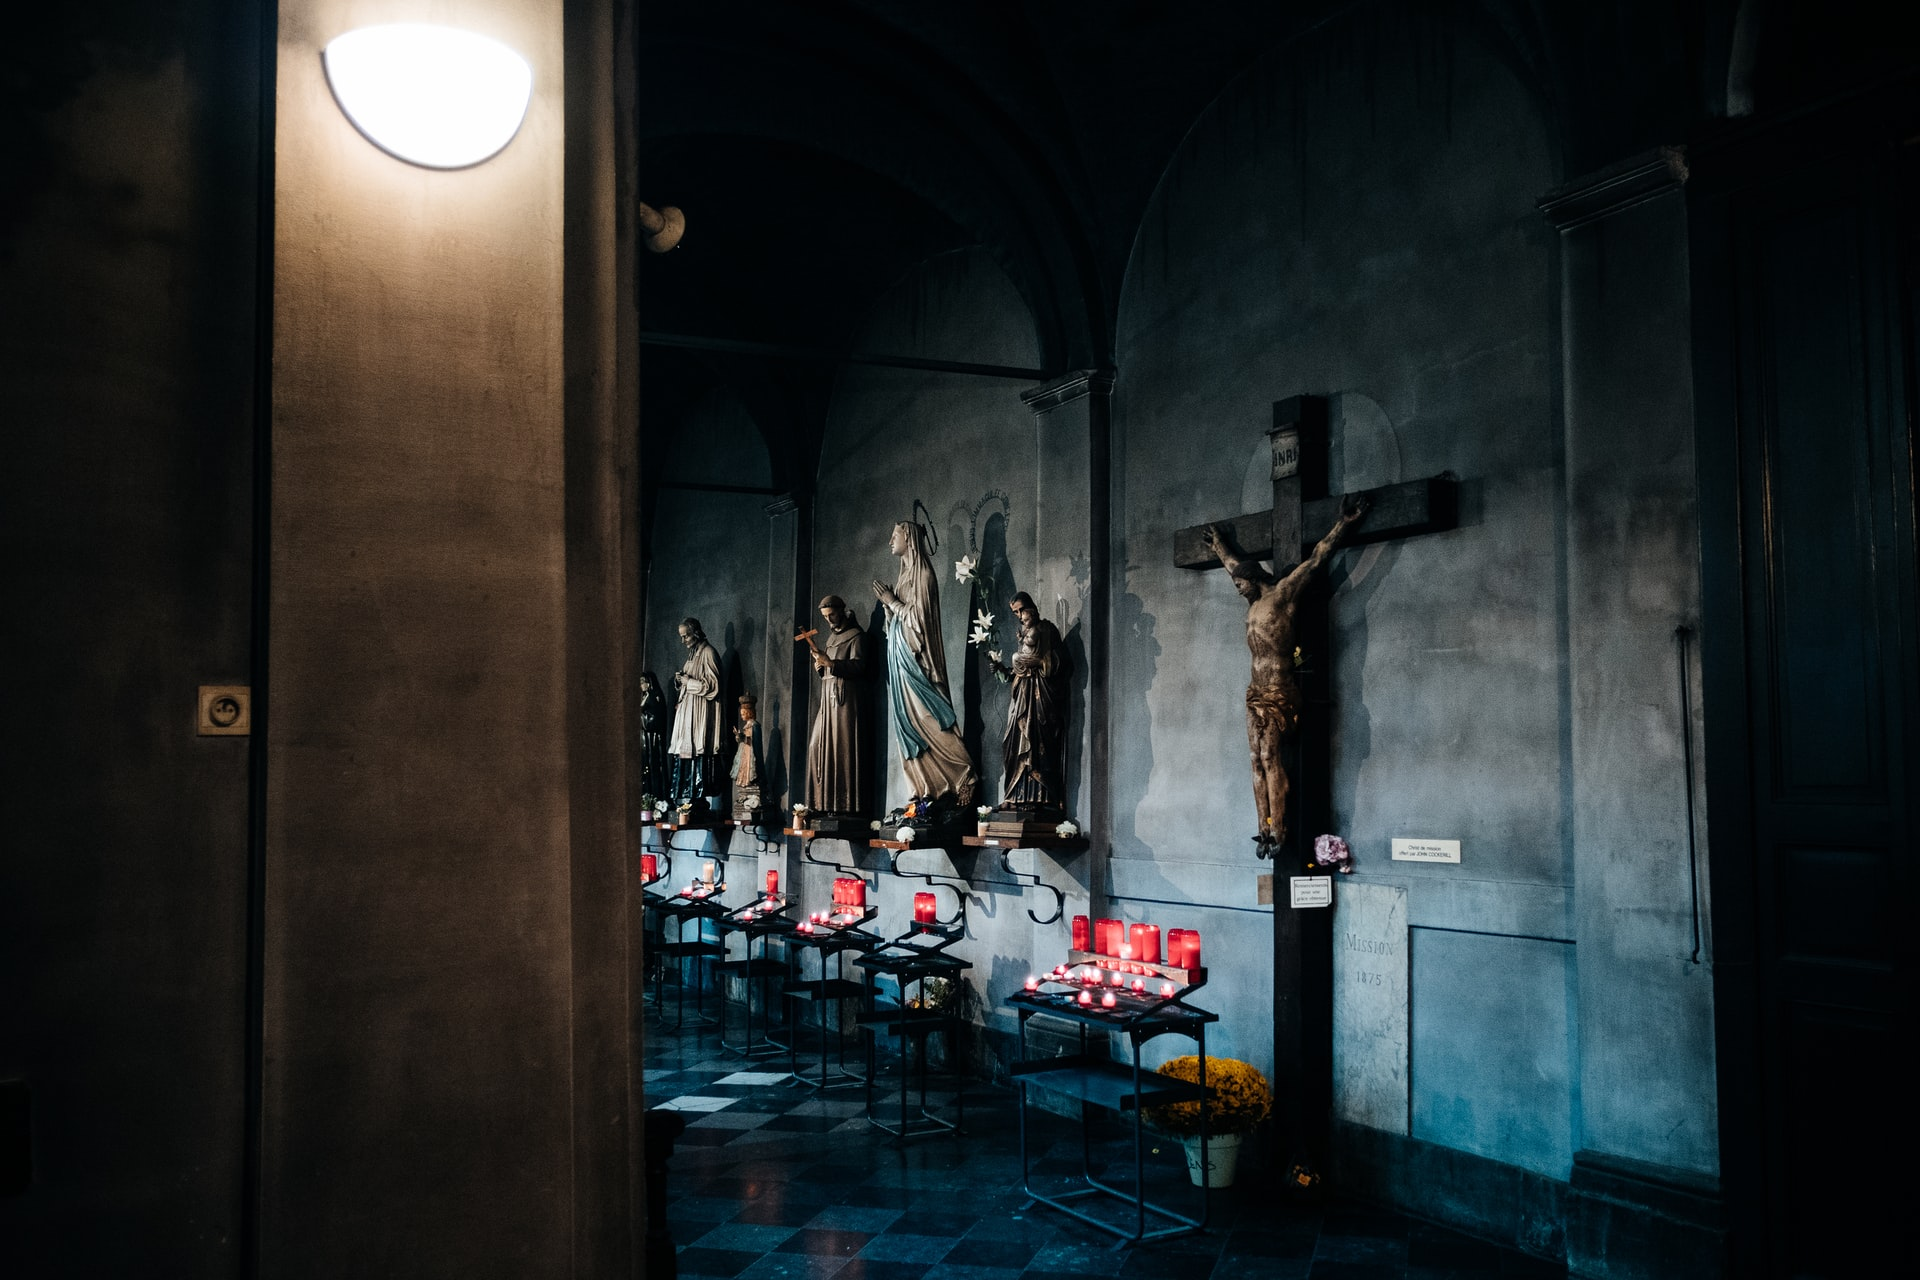 AR Experience of The Crucifixion of Jesus Christ Will Be Sold as an NFT by CrimeDoor